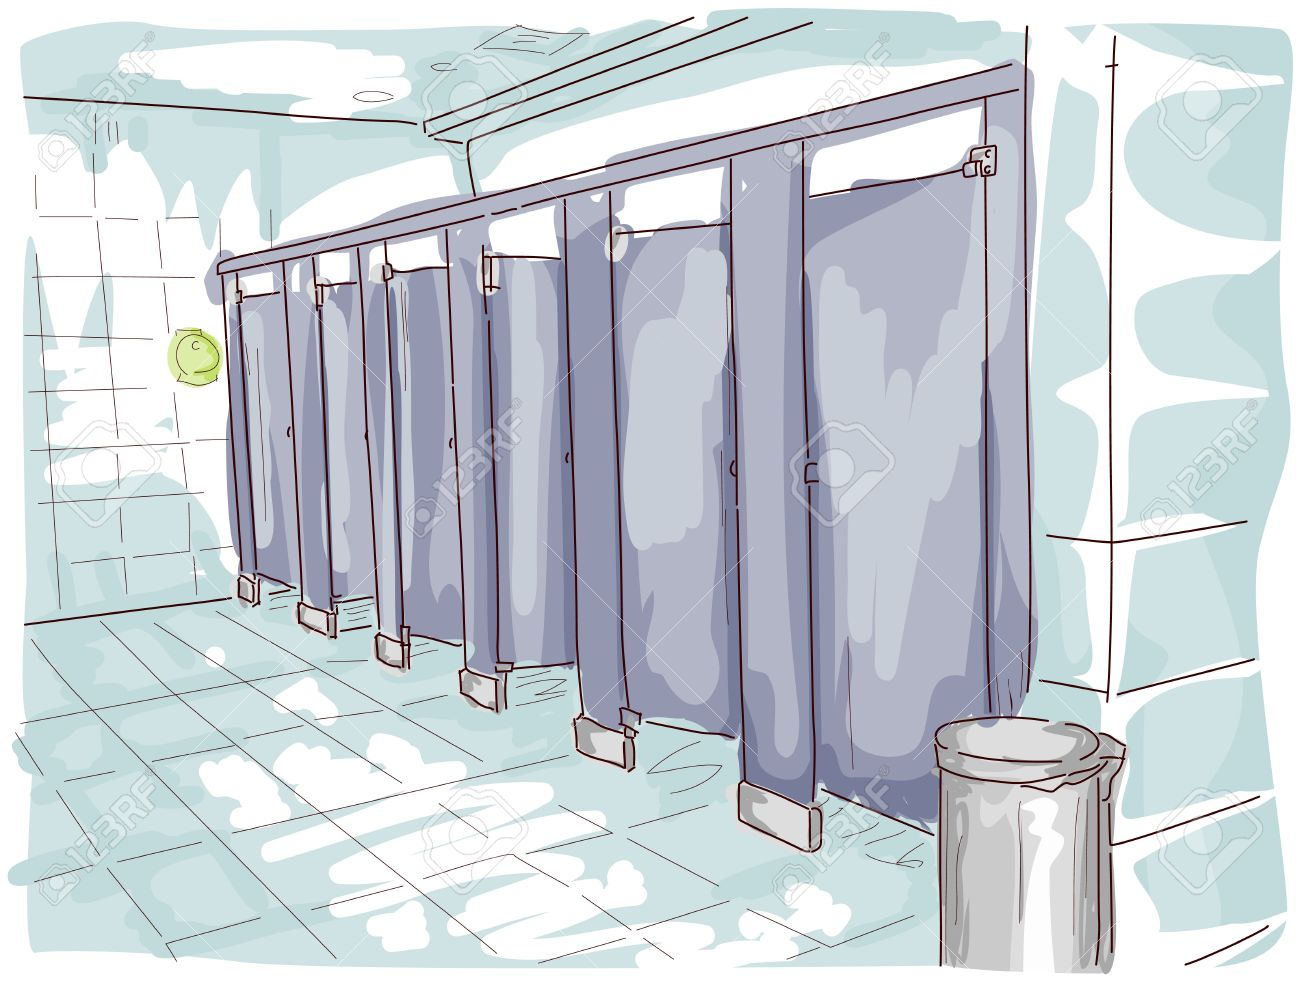 Public Toilet Illustration Stock Photo, Picture And Royalty Free.